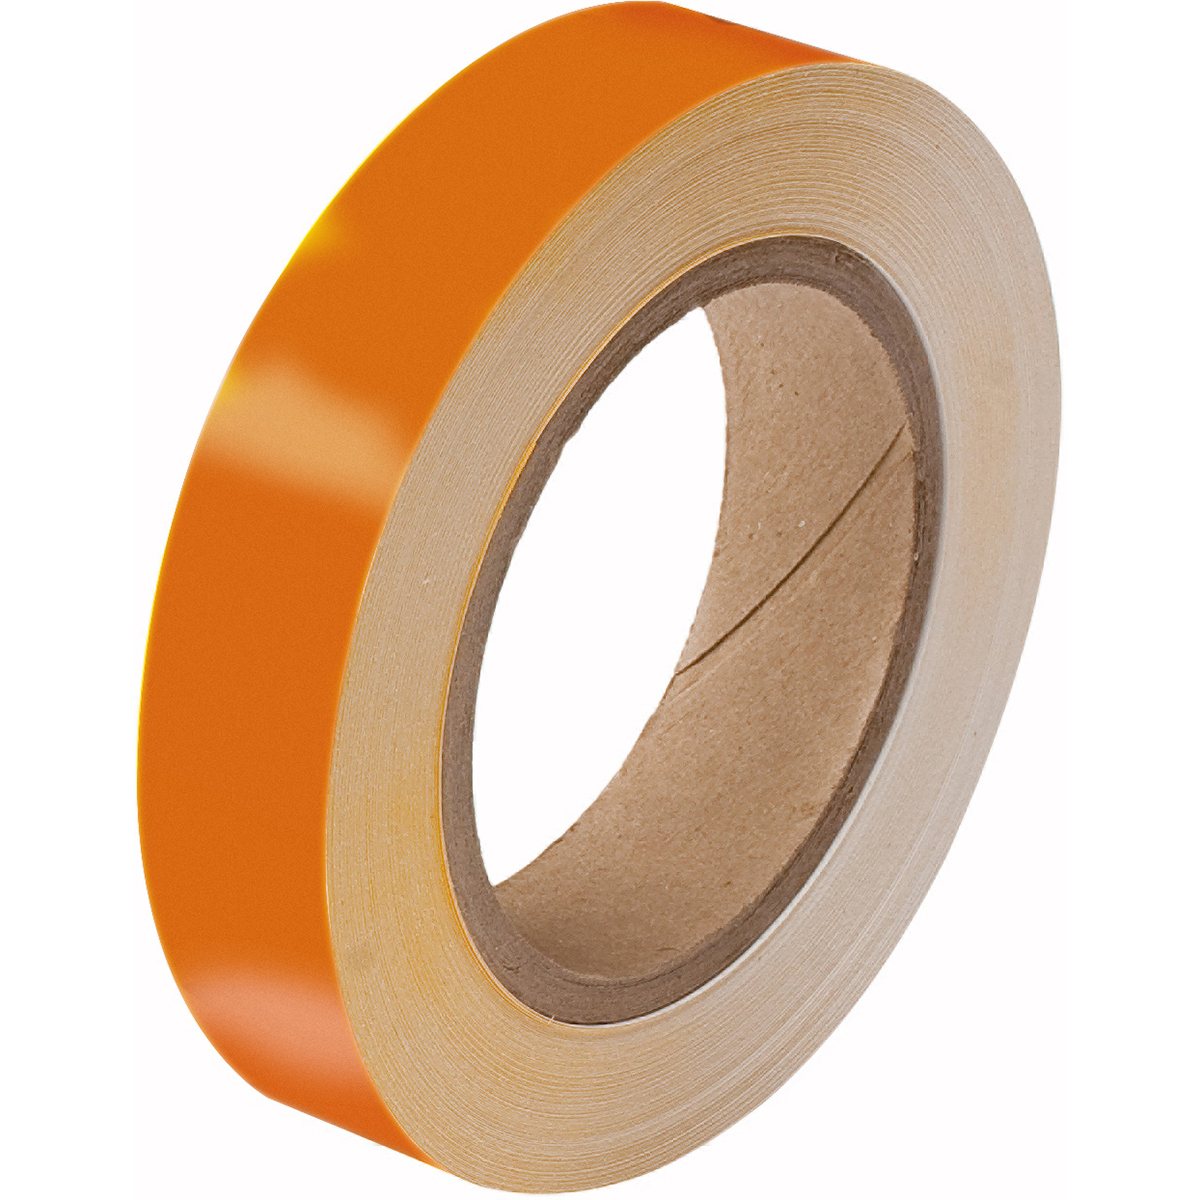 Pipe Banding Tape Orange 25mm